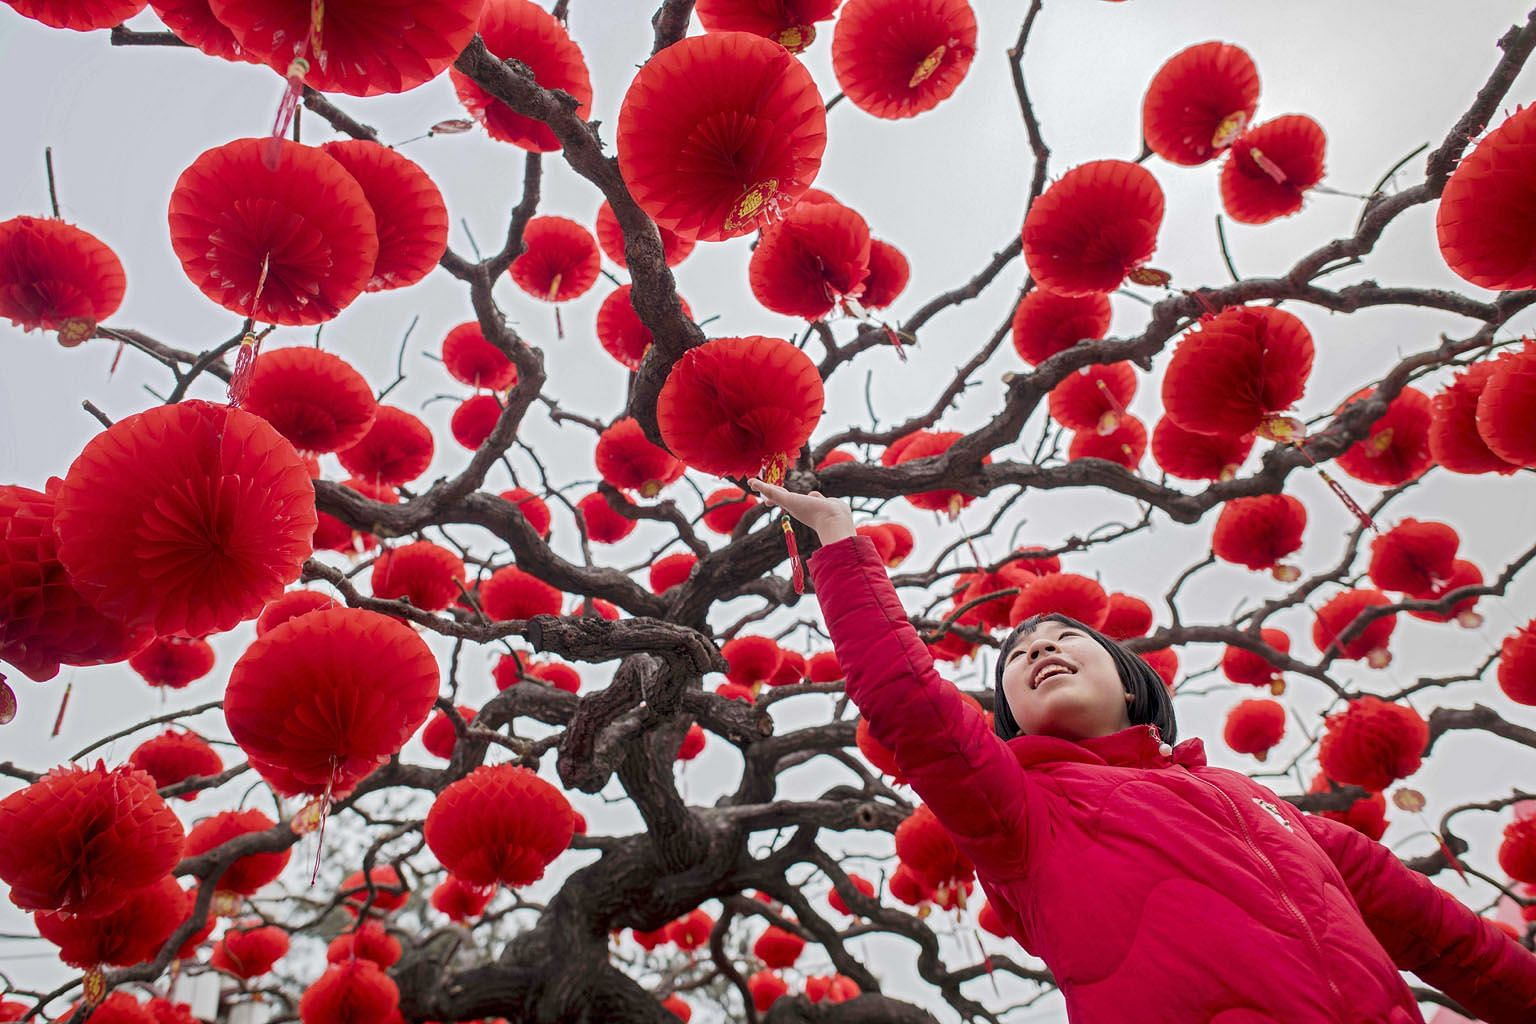 CHINA: A girl in Beijing admiring the numerous lanterns creating an explosion of colour in an otherwise grey winter landscape. Chinese New Year celebrations across China are scheduled to last a week, with millions of migrant workers returning to their hom